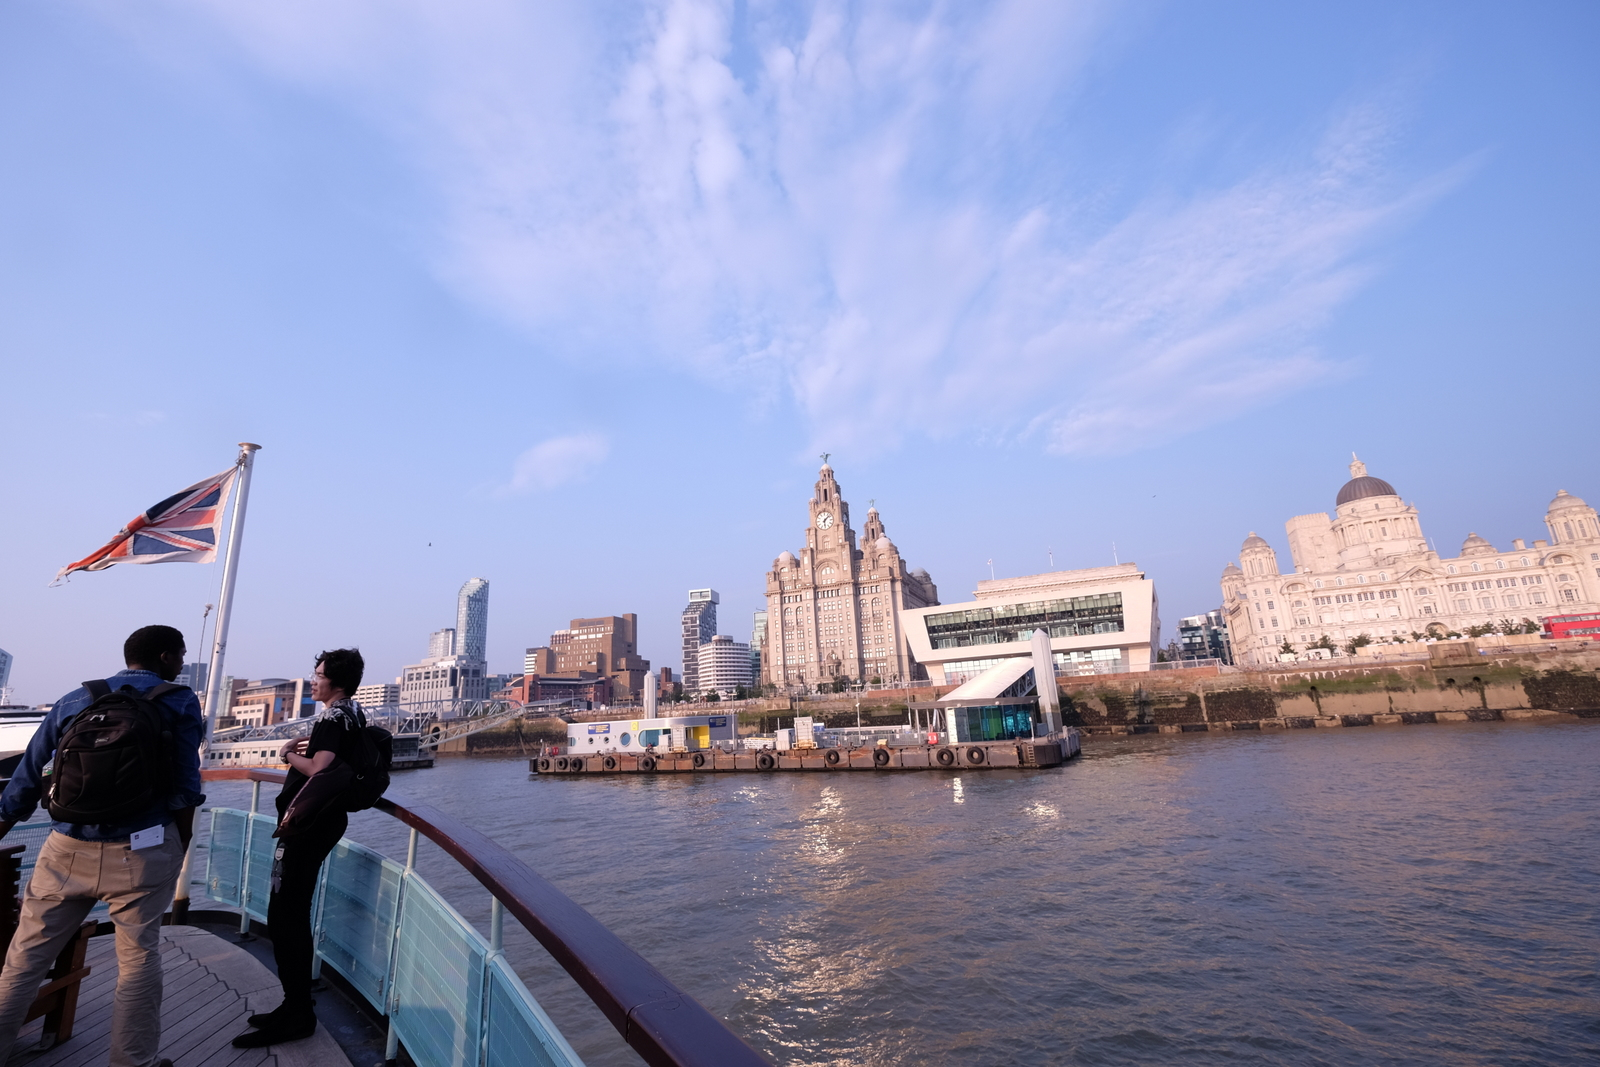 A ferry ride across the Mersey River is a great way to see Liverpool, or to act out a favourite song from your childhood. - JIM BYERS PHOTO